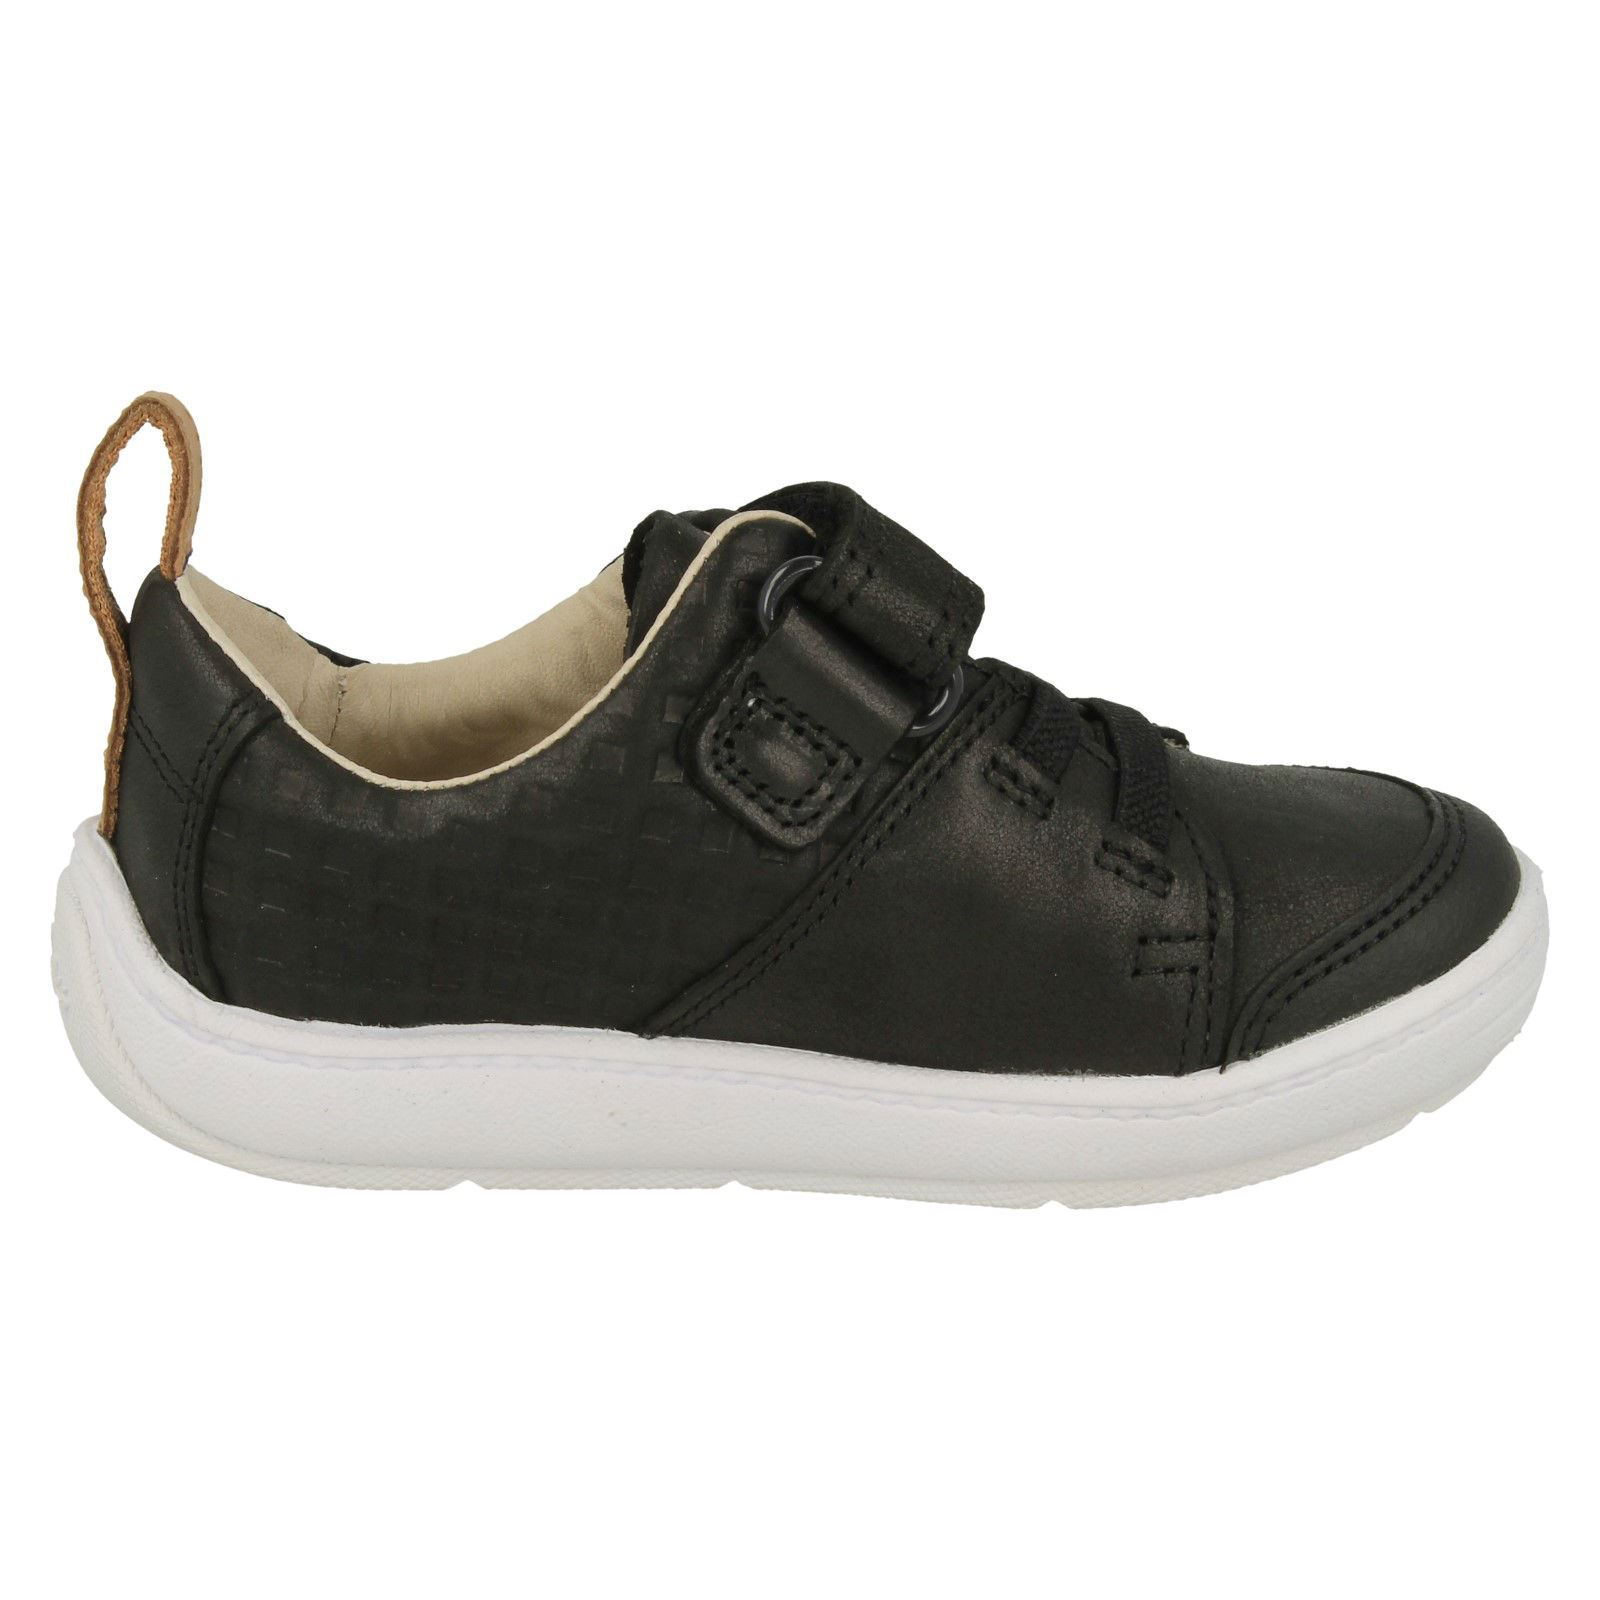 Boys Clarks Casual First Trainers /'Dash Racer/'